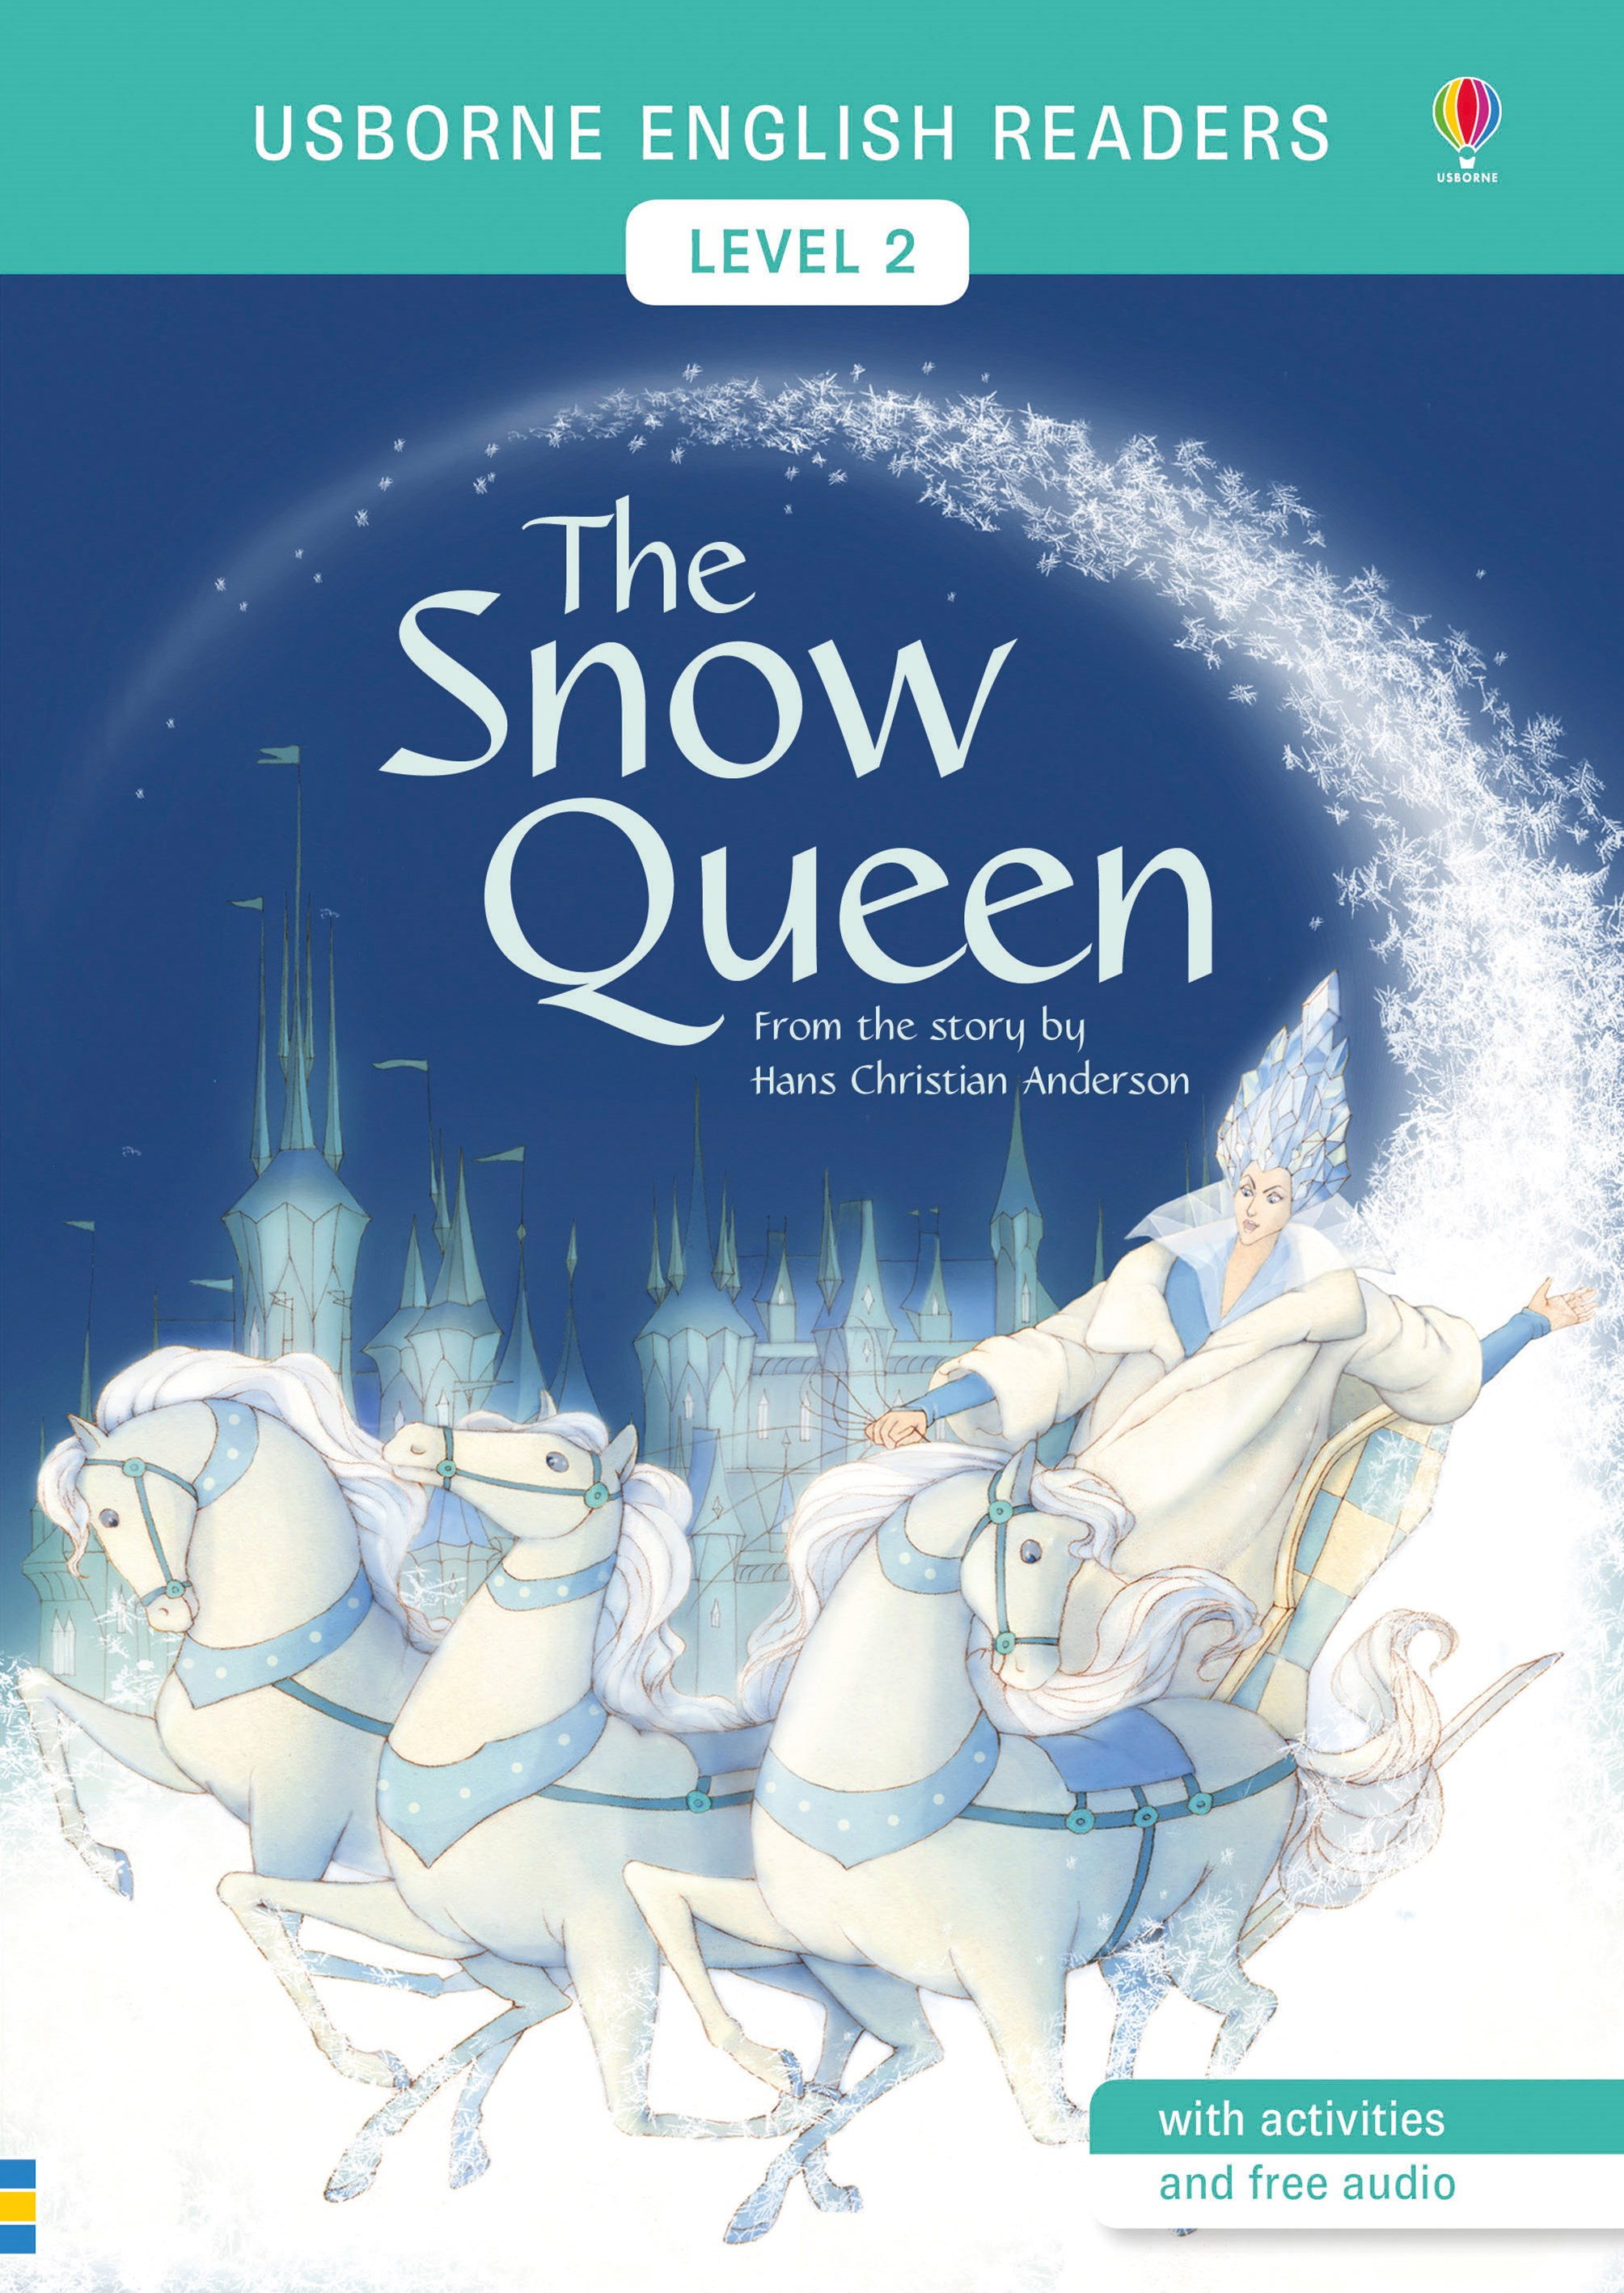 Usborne English Readers: The Snow Queen